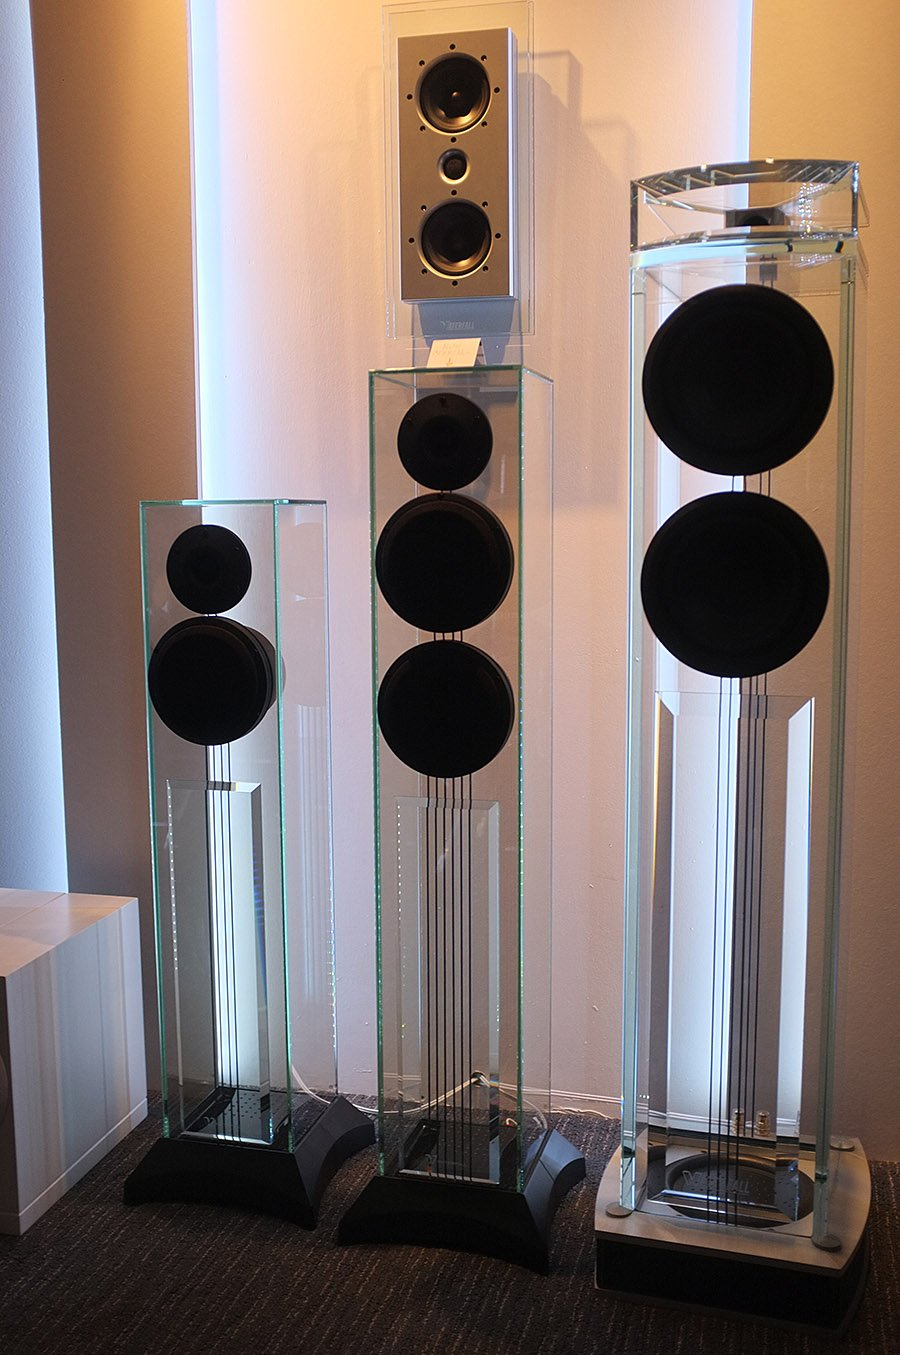 national_audio_show_2016_xlusive_audio_1_online